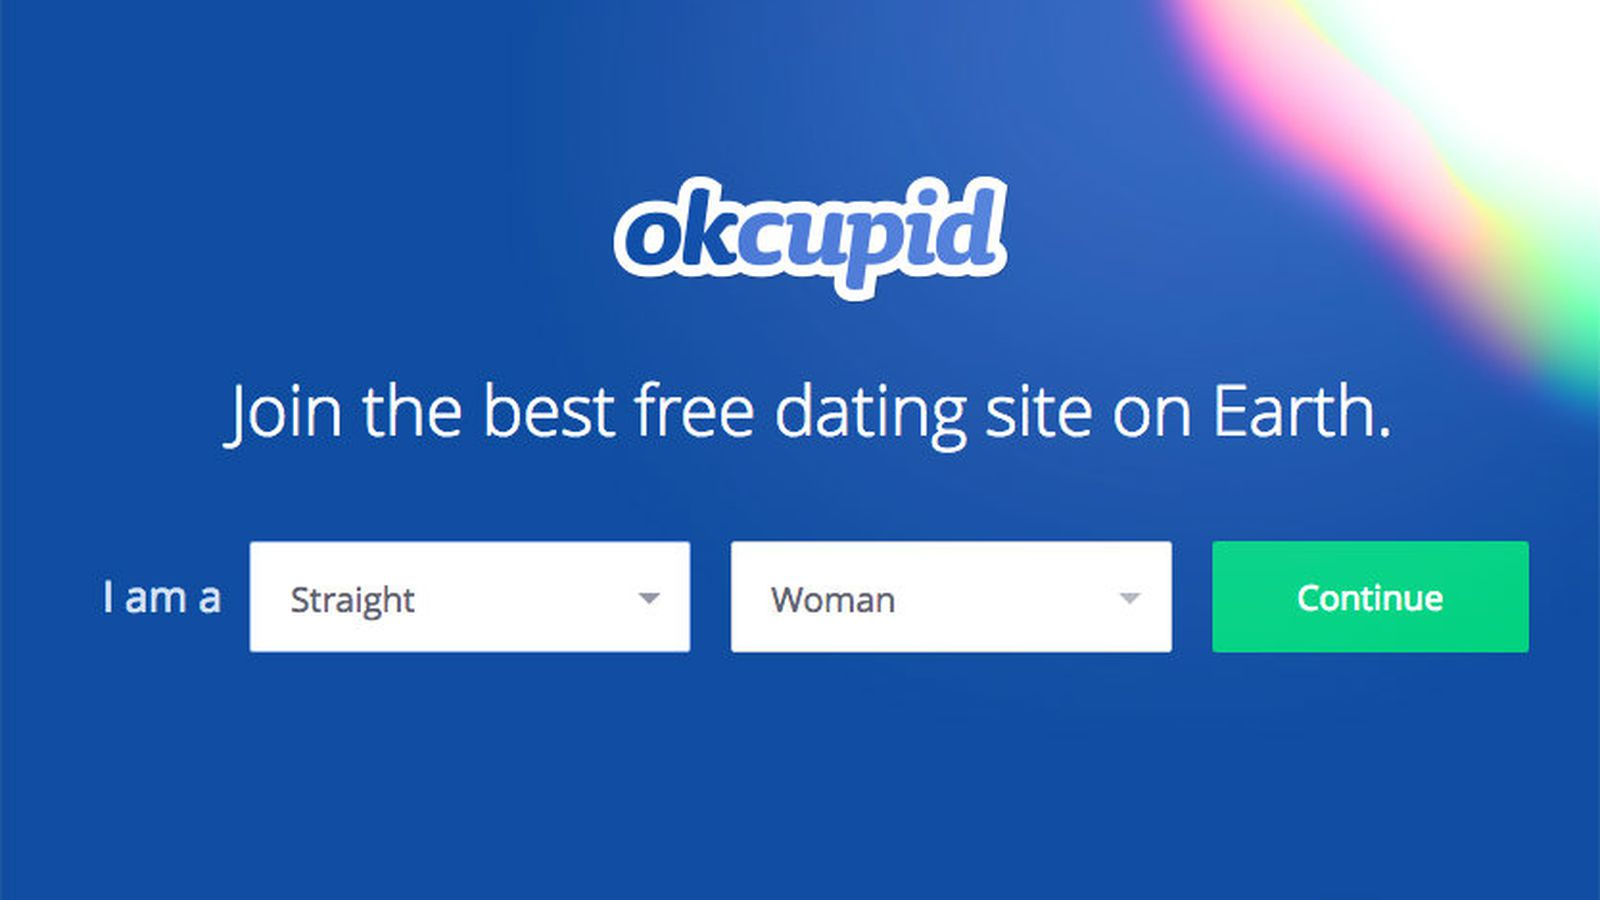 Online dating after 50 okcupid